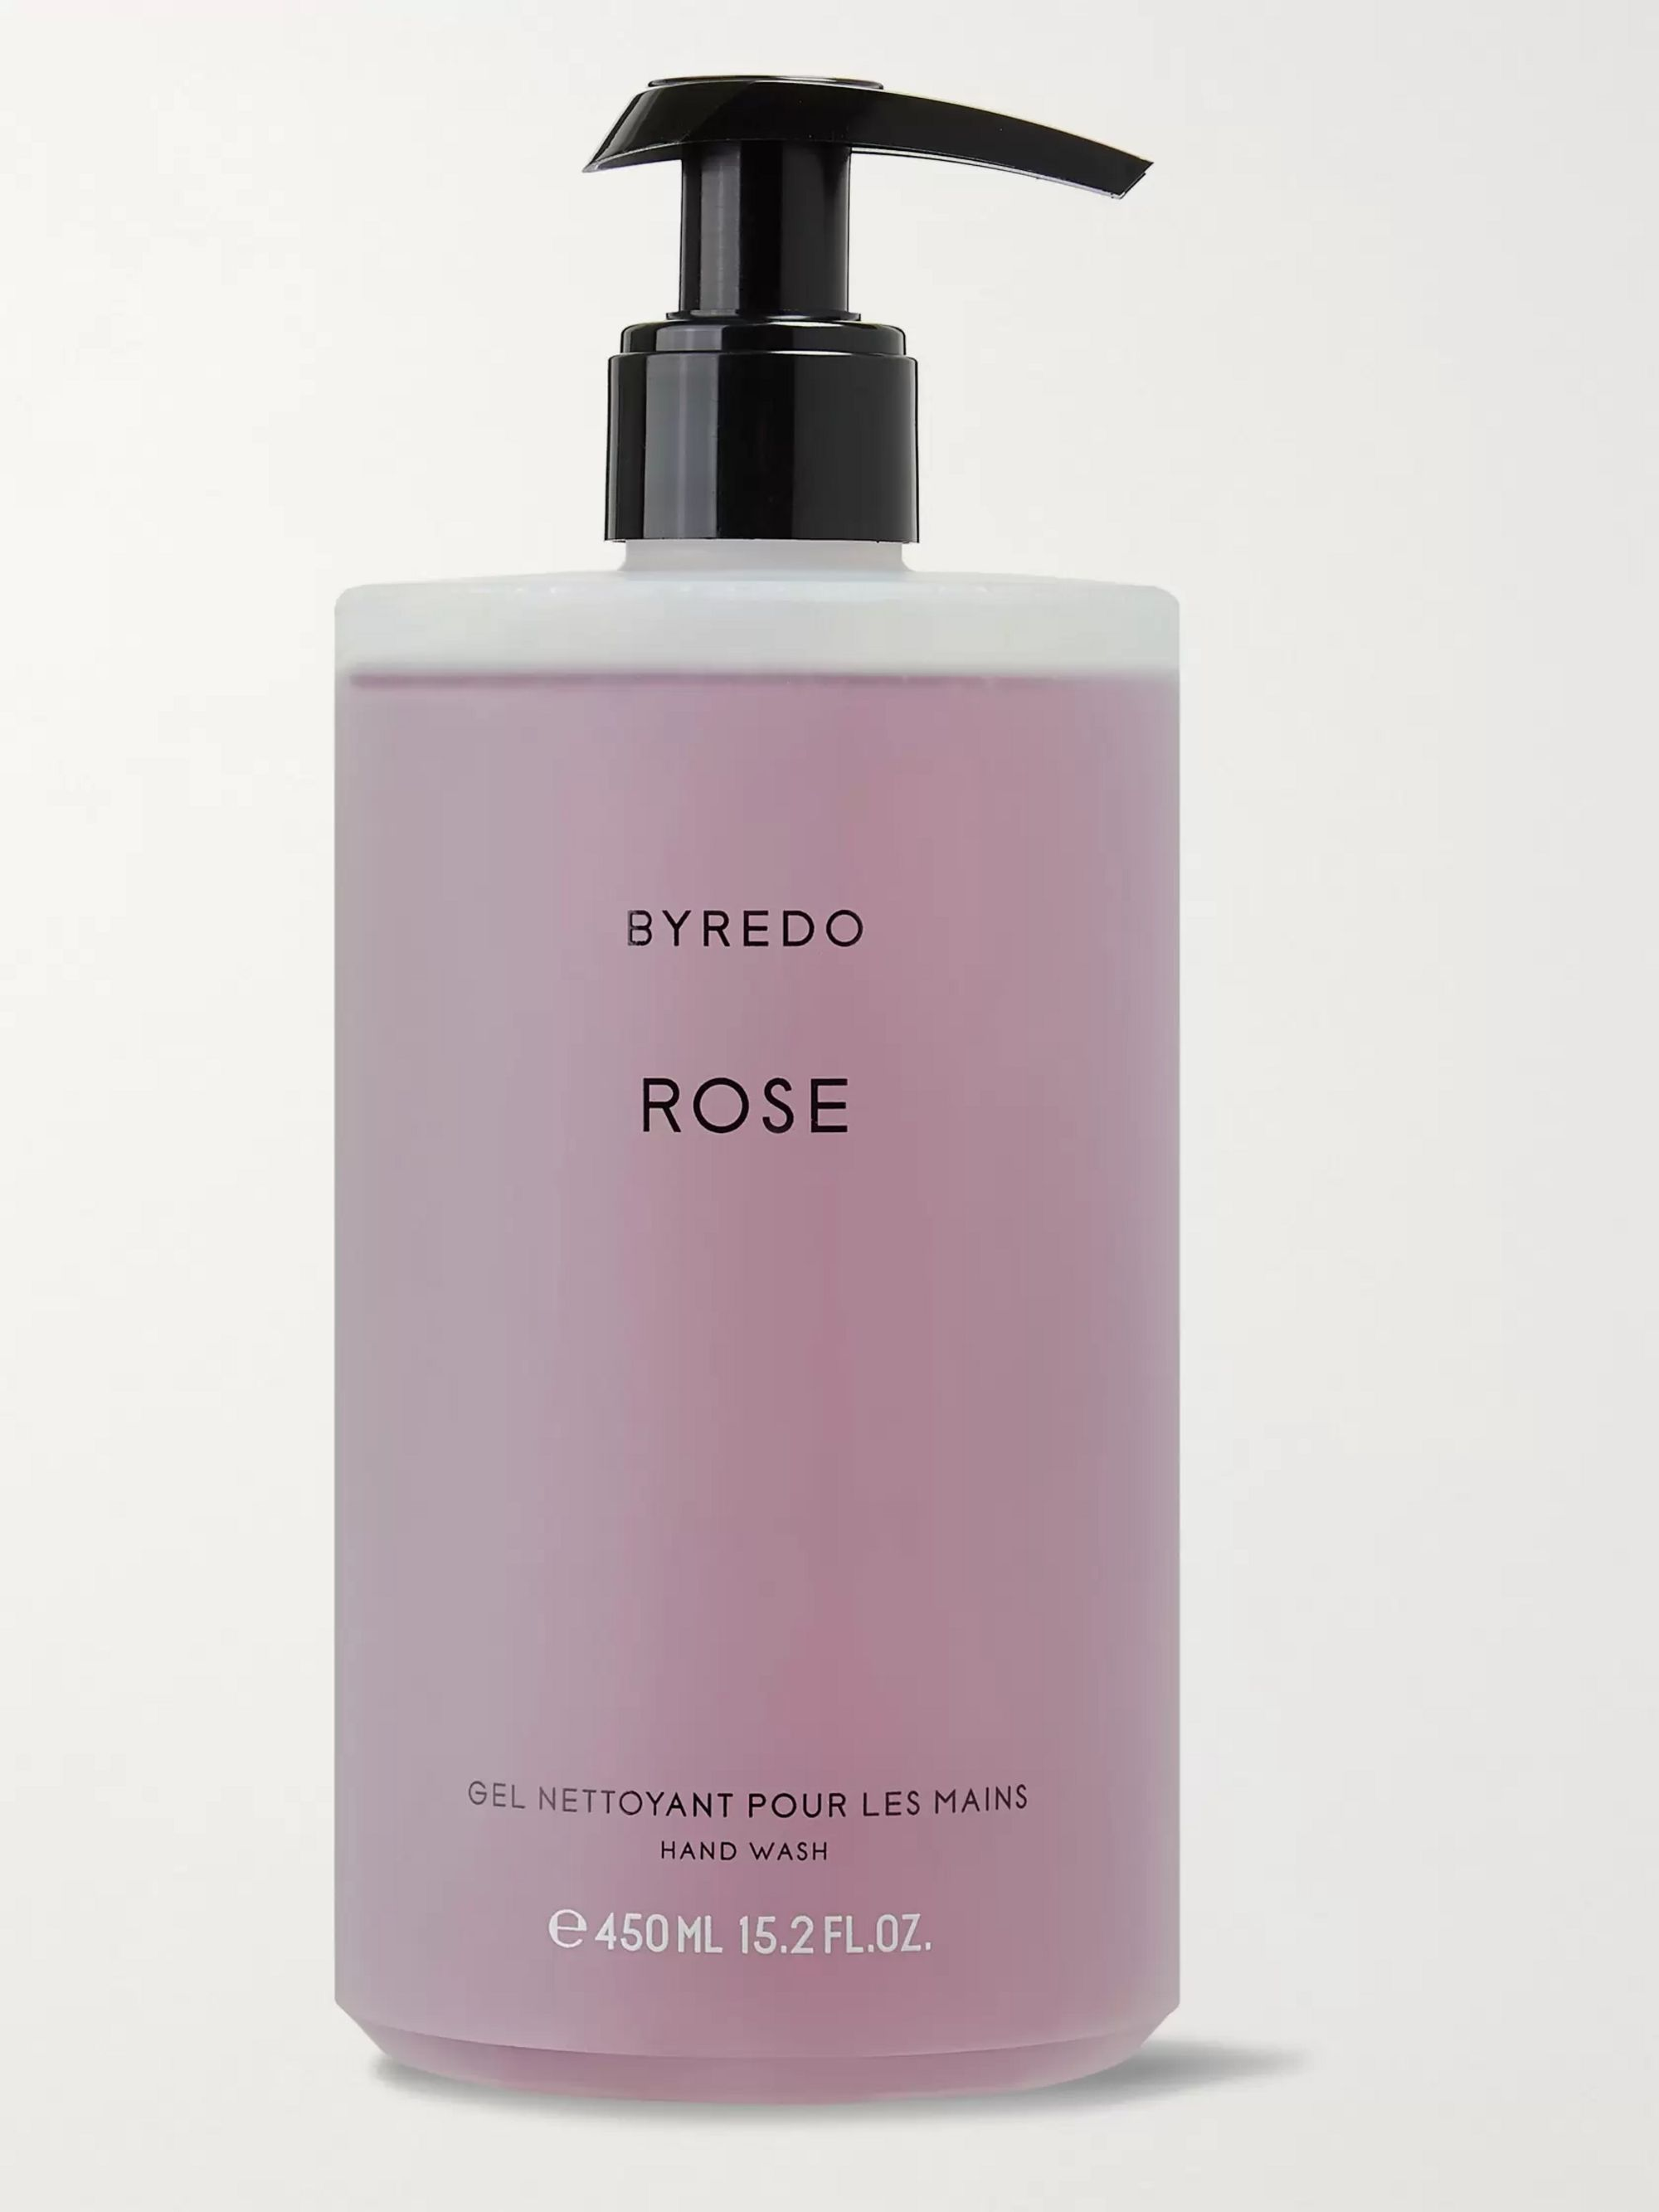 BYREDO Hand Wash - Rose, 450ml